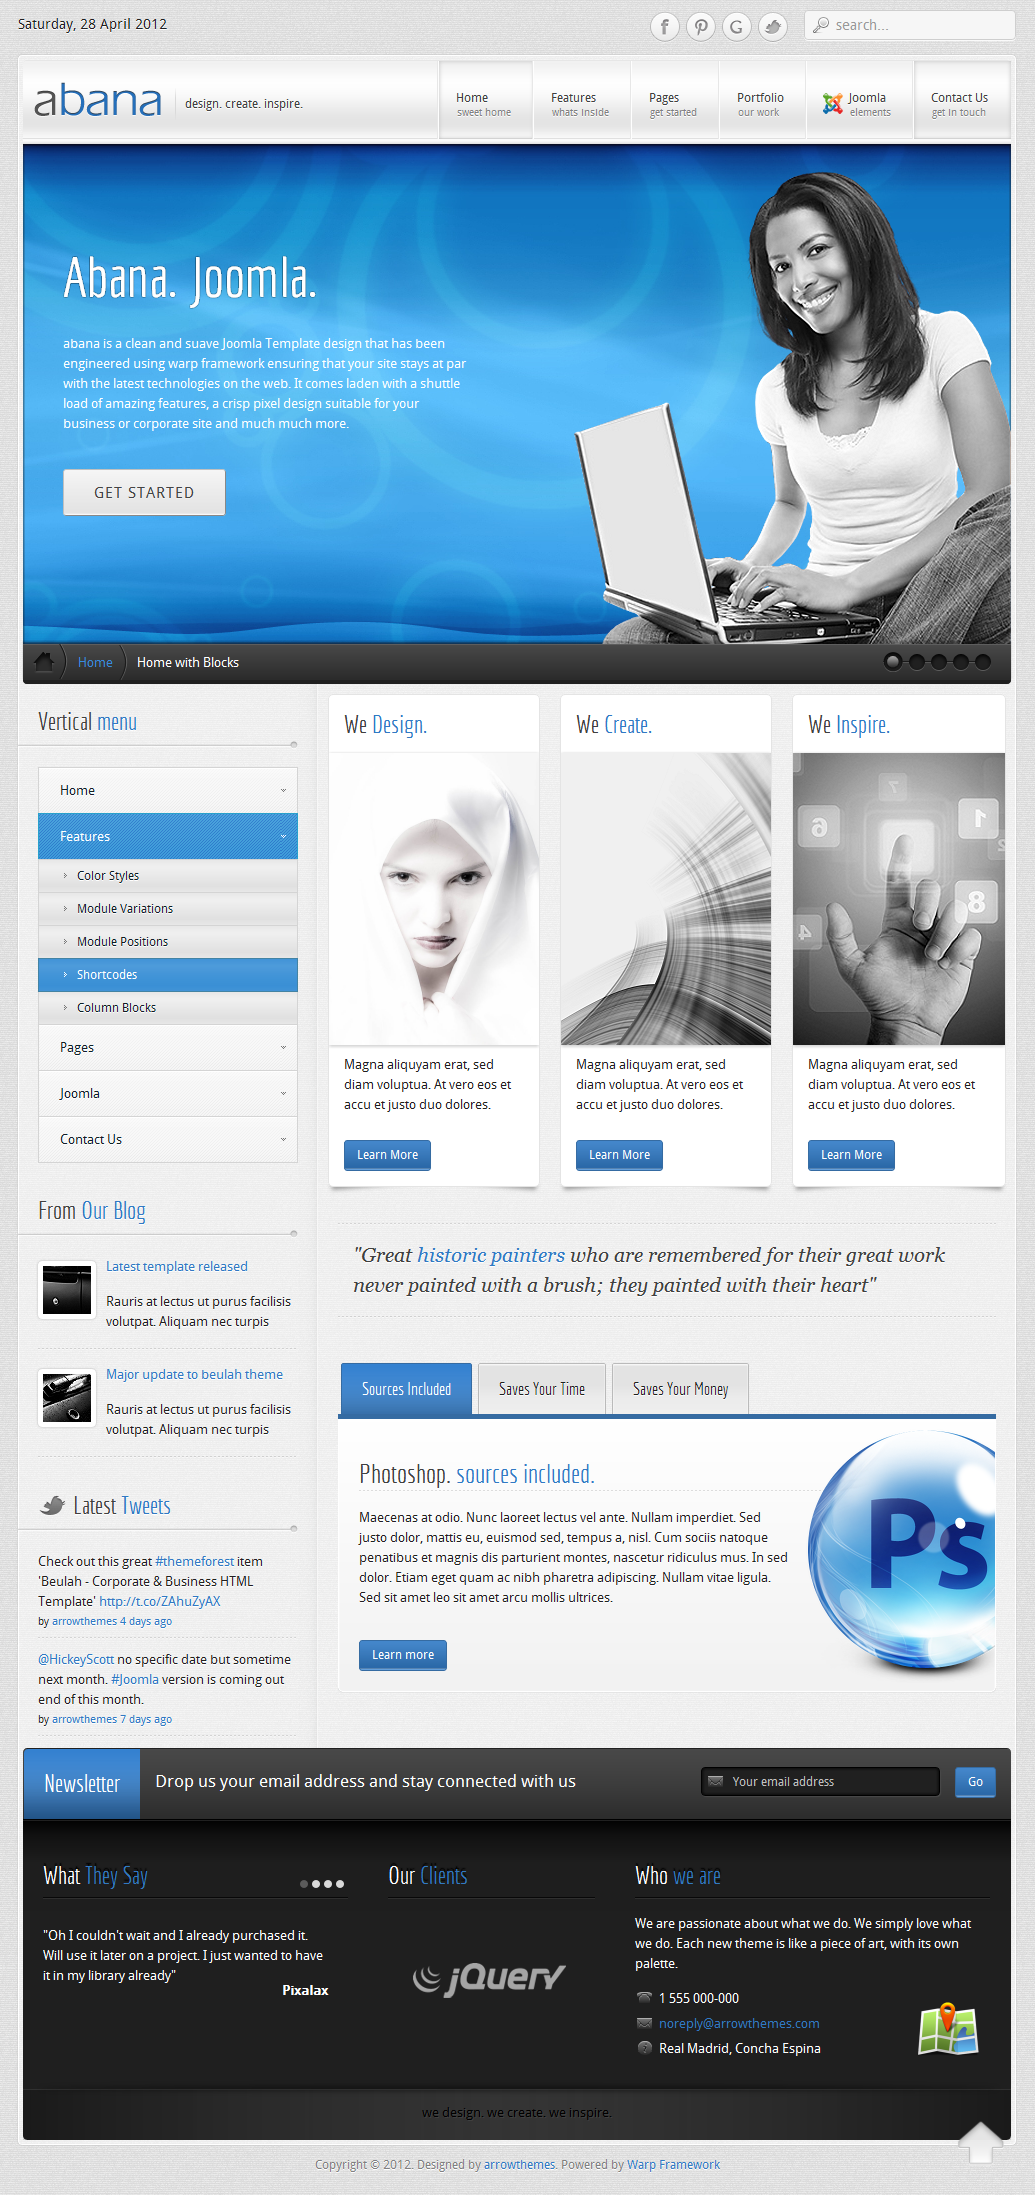 Abana - Premium JomSocial Ready Business Joomla Template - Screenshot 02 - Abana Joomla Template - Home page